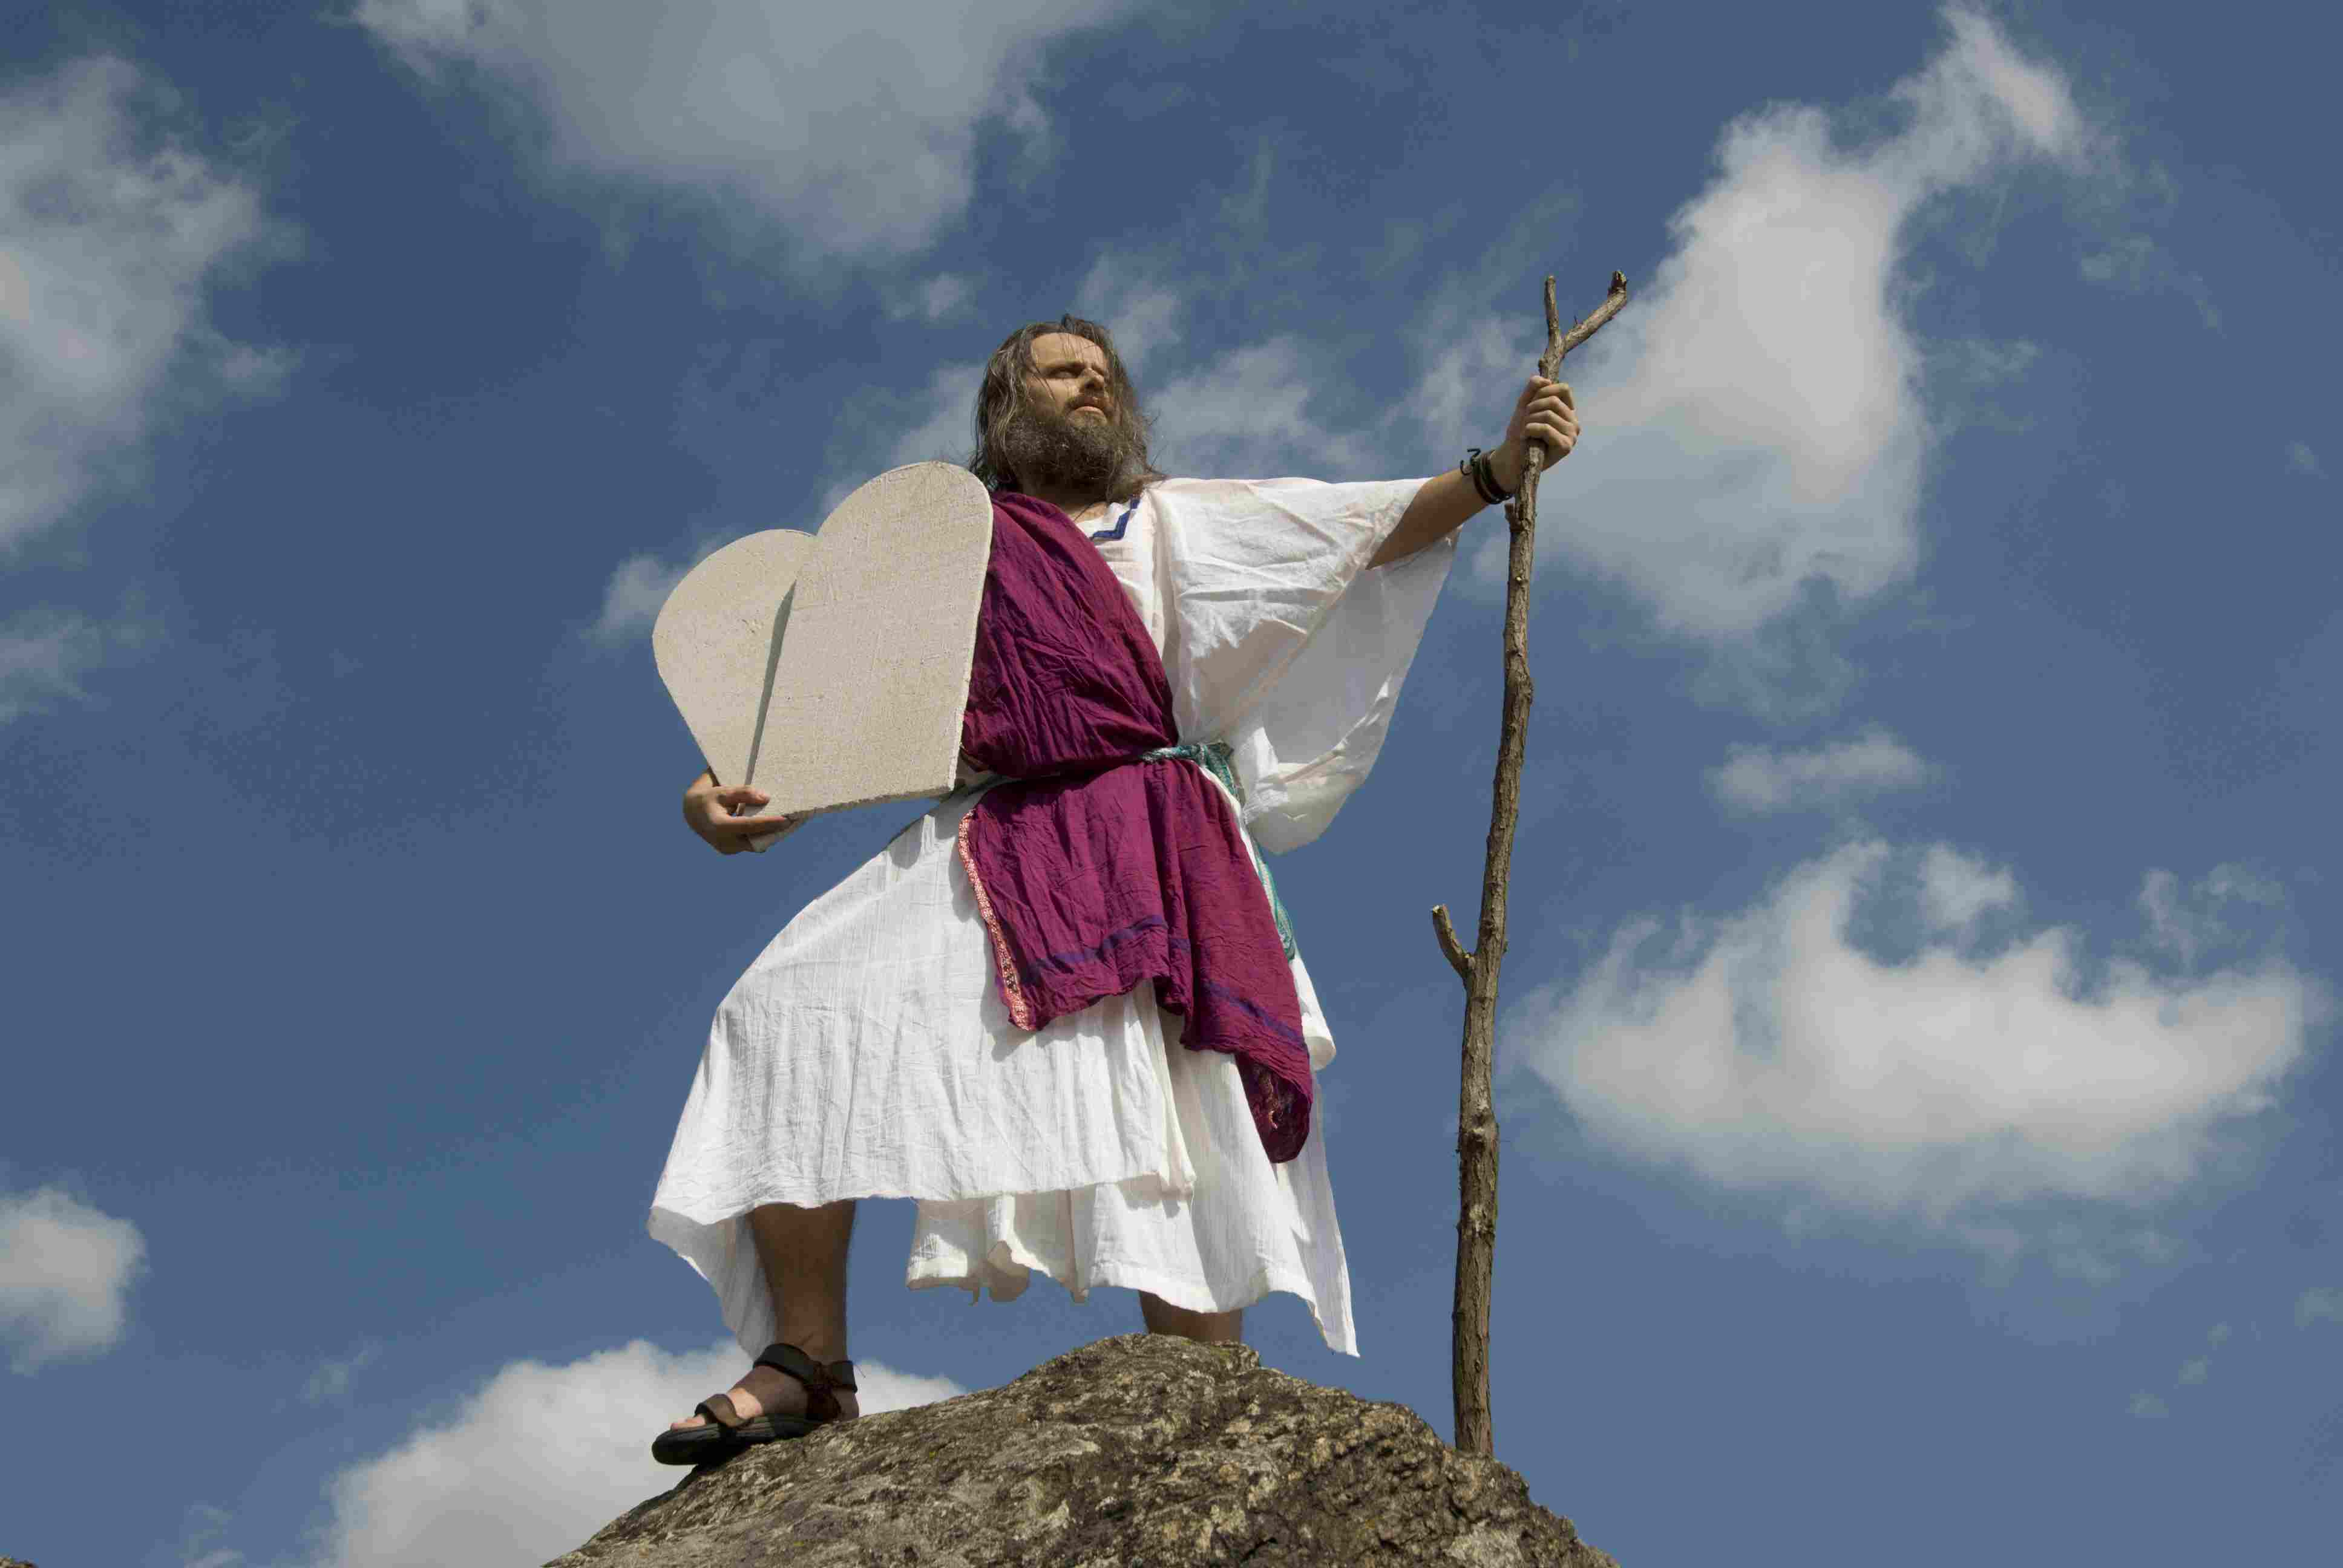 A man dressed as Moses standing on a hill.